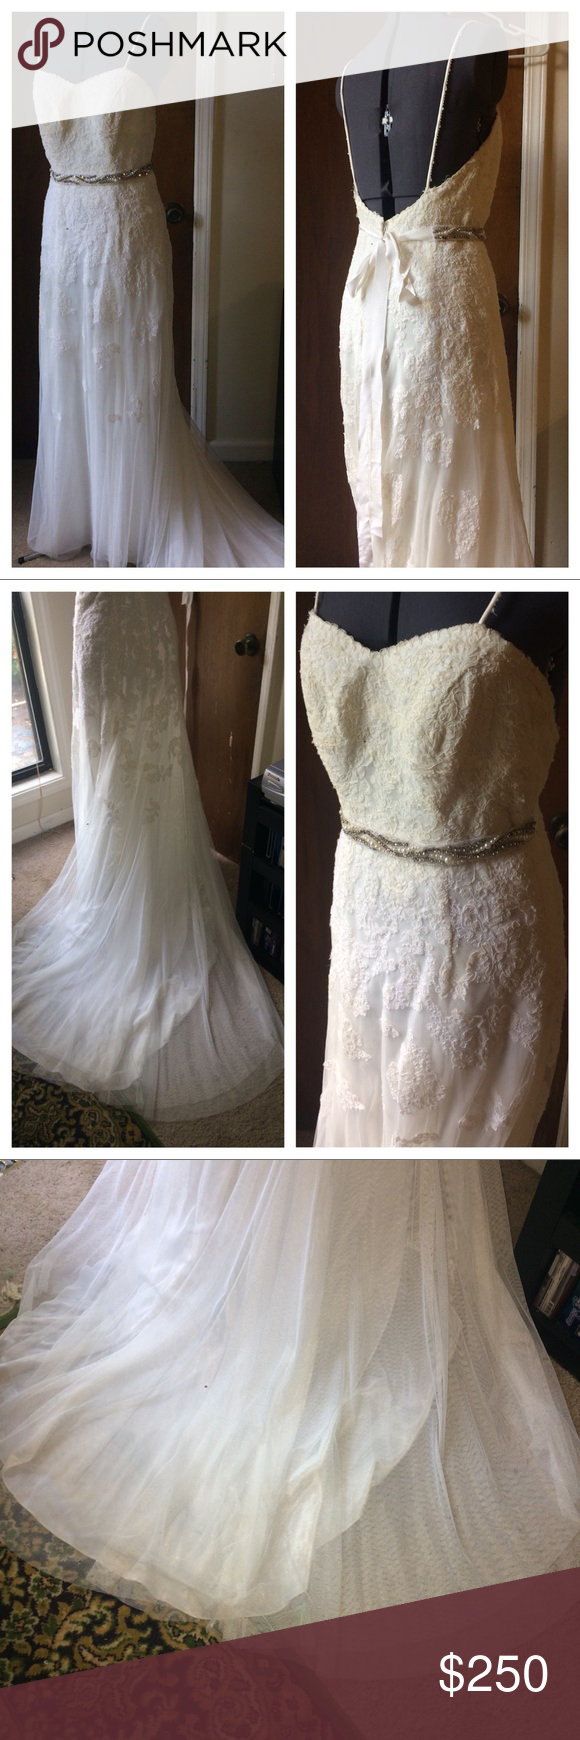 Wedding dress dry cleaning near me  Lace overlay wedding gown  Lace overlay Overlay and Gowns